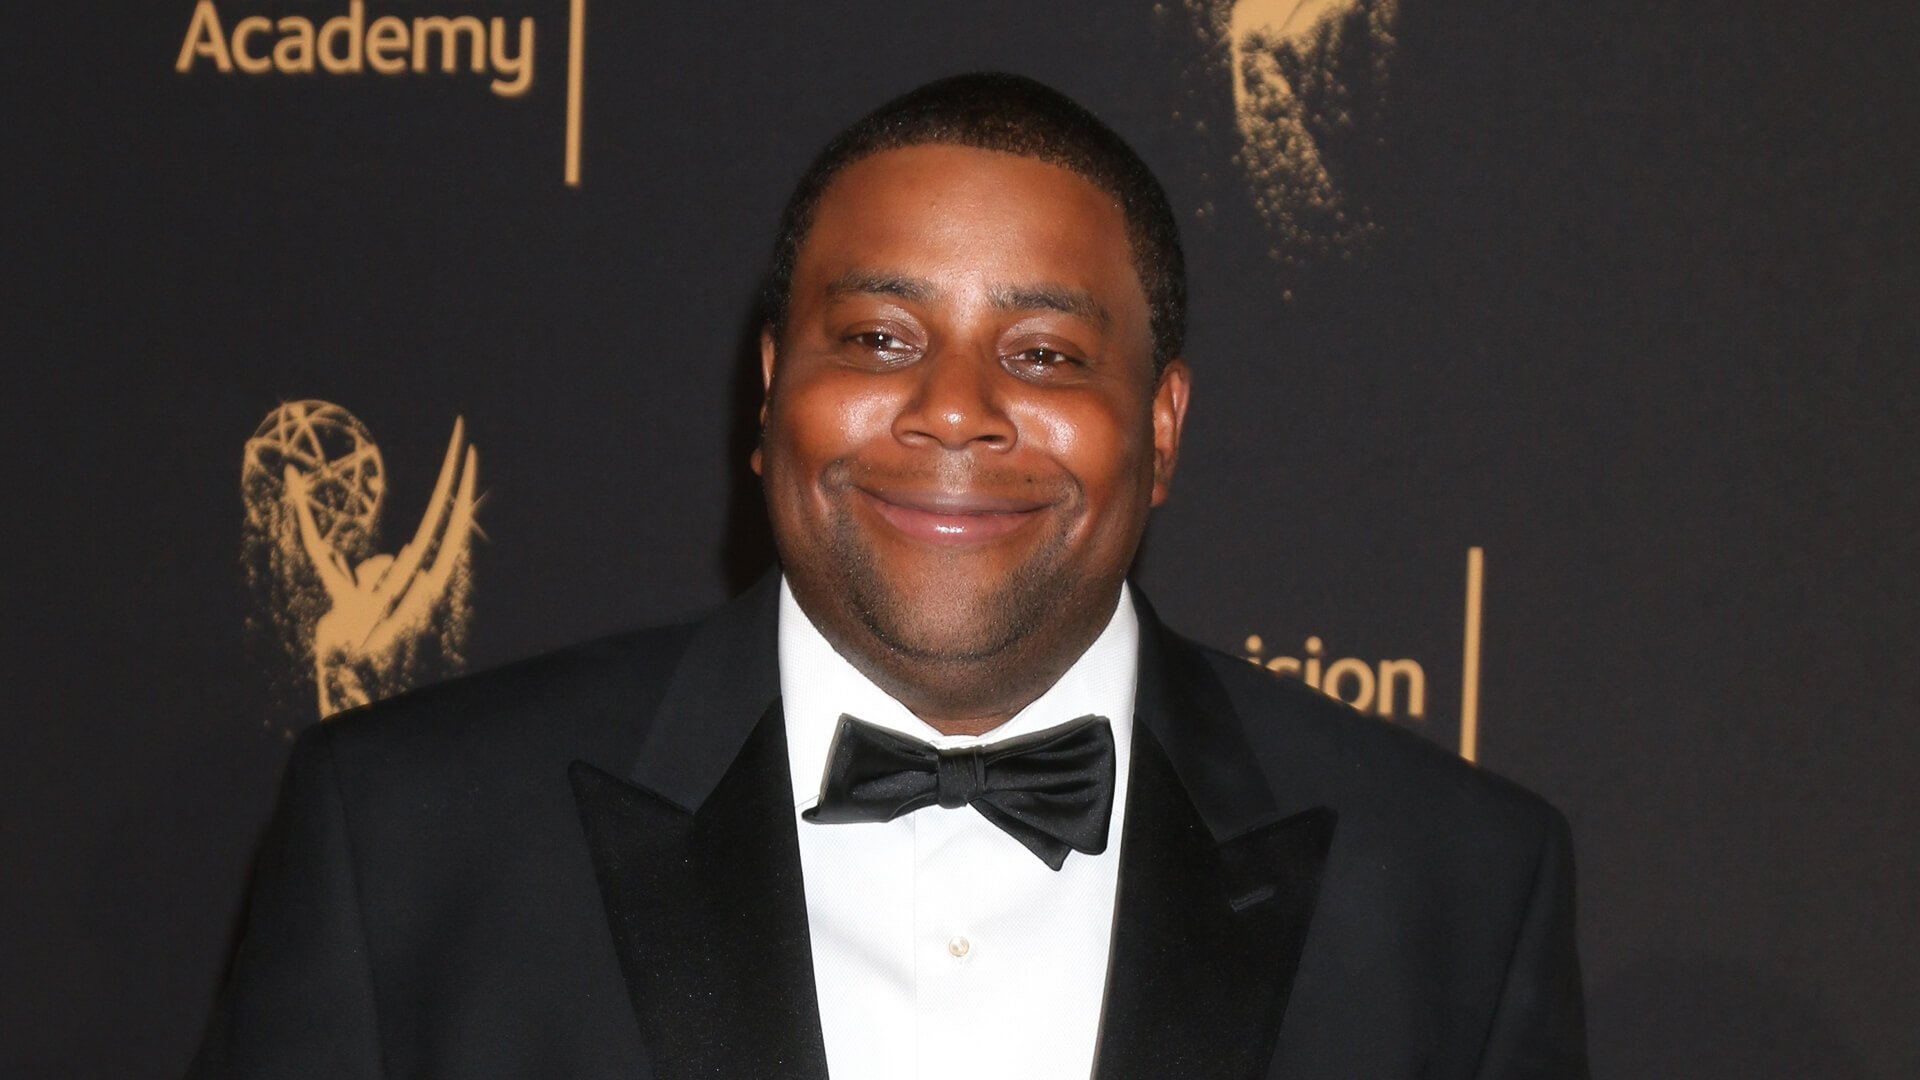 What Is Kenan Thompson's Net Worth?